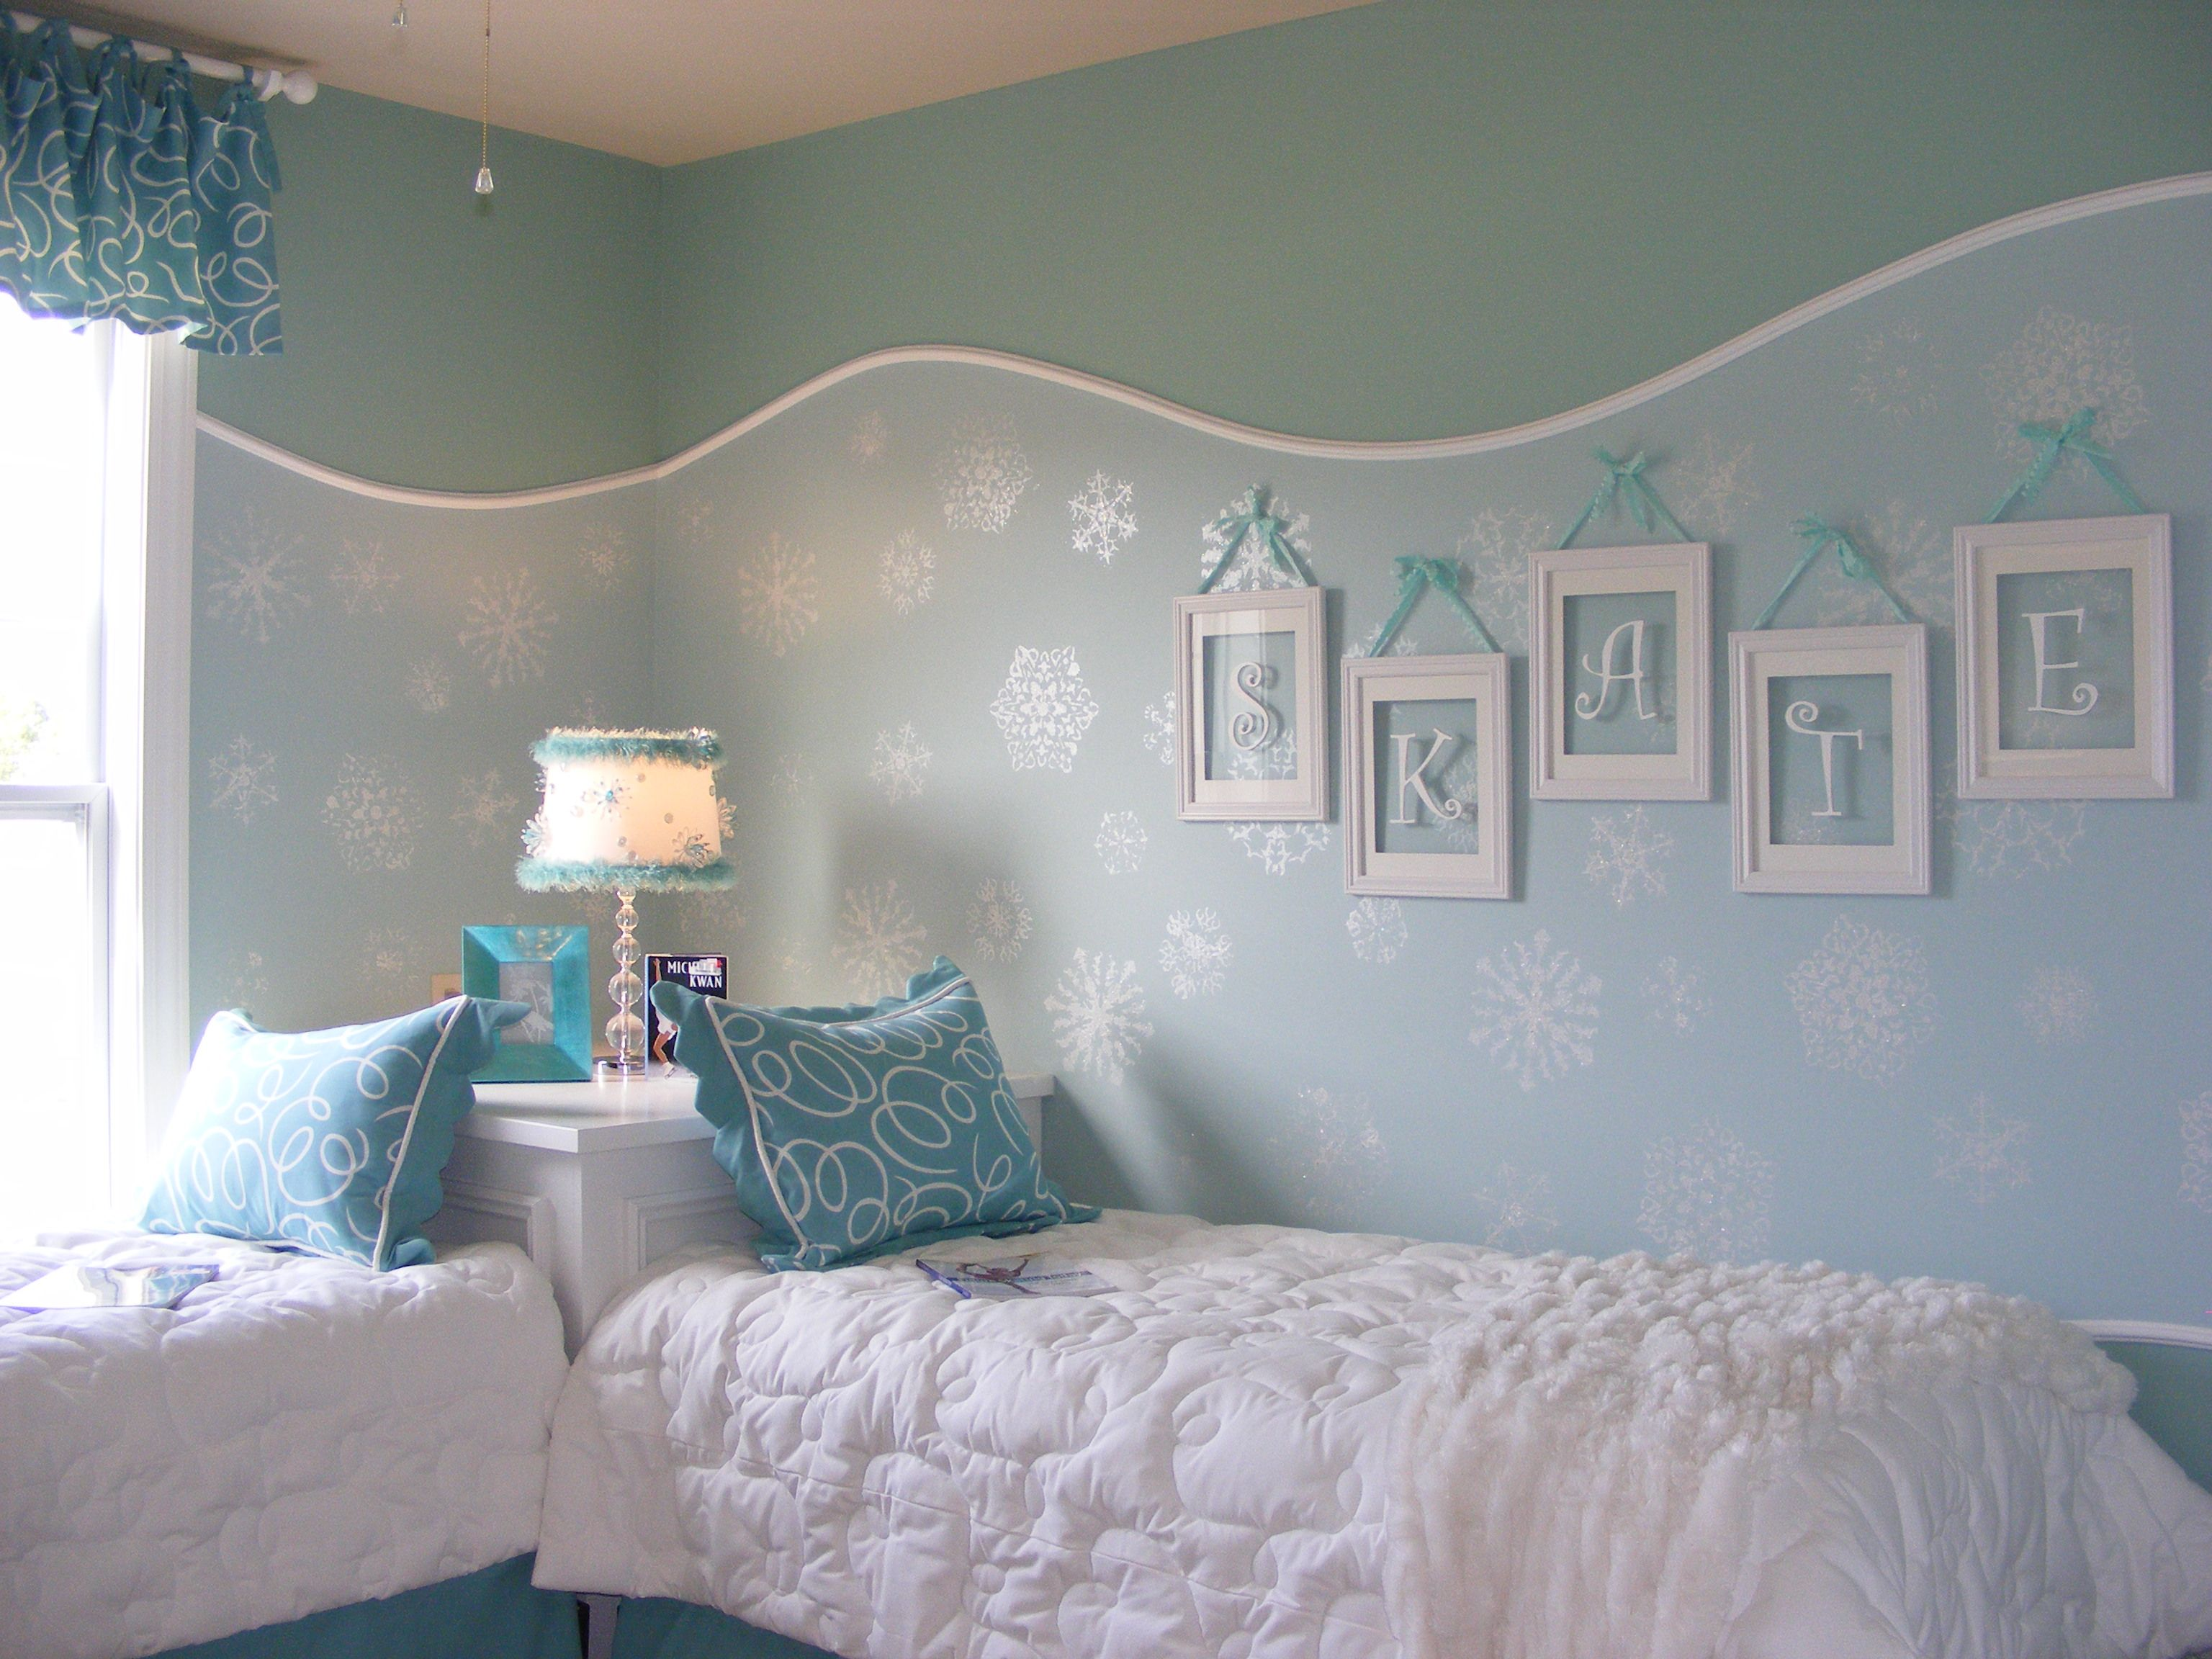 Frozen inspired bedroom - Frozen Girls Bedroom The The Curve Paint Border And The Name Instead Of Just Wood Stencil Letters In Simple White Picture Frames